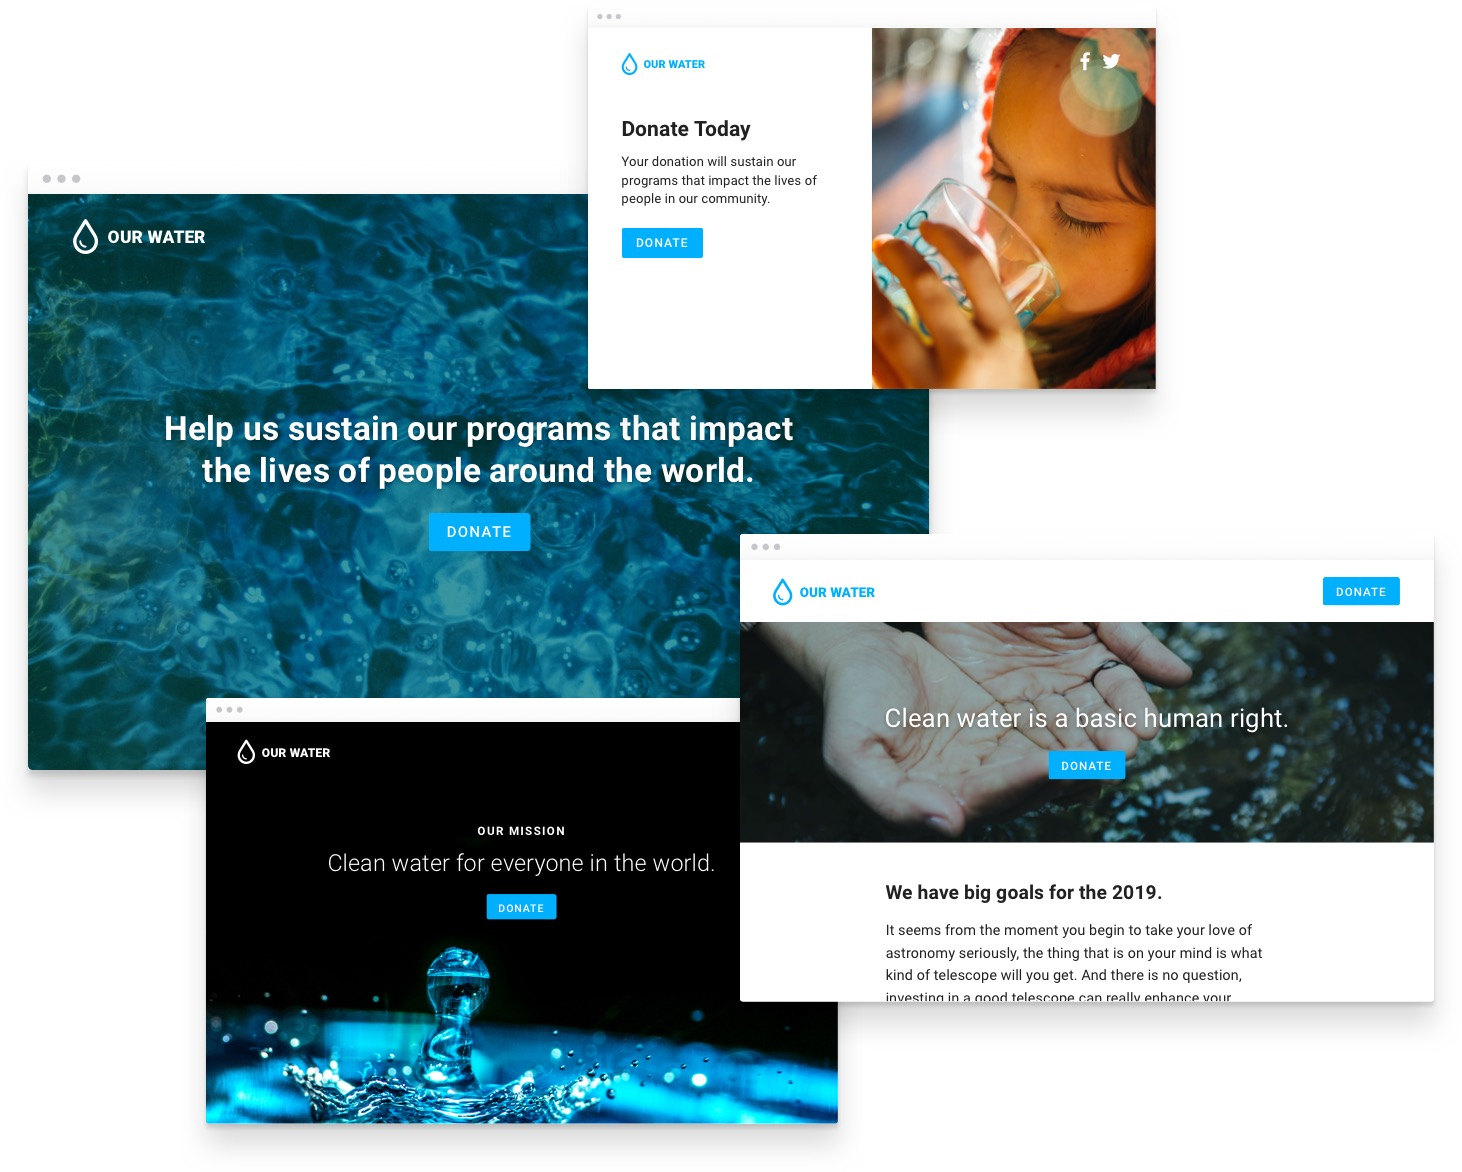 Examples of four different fundraising pages for one fictional nonprofit named Our Water.